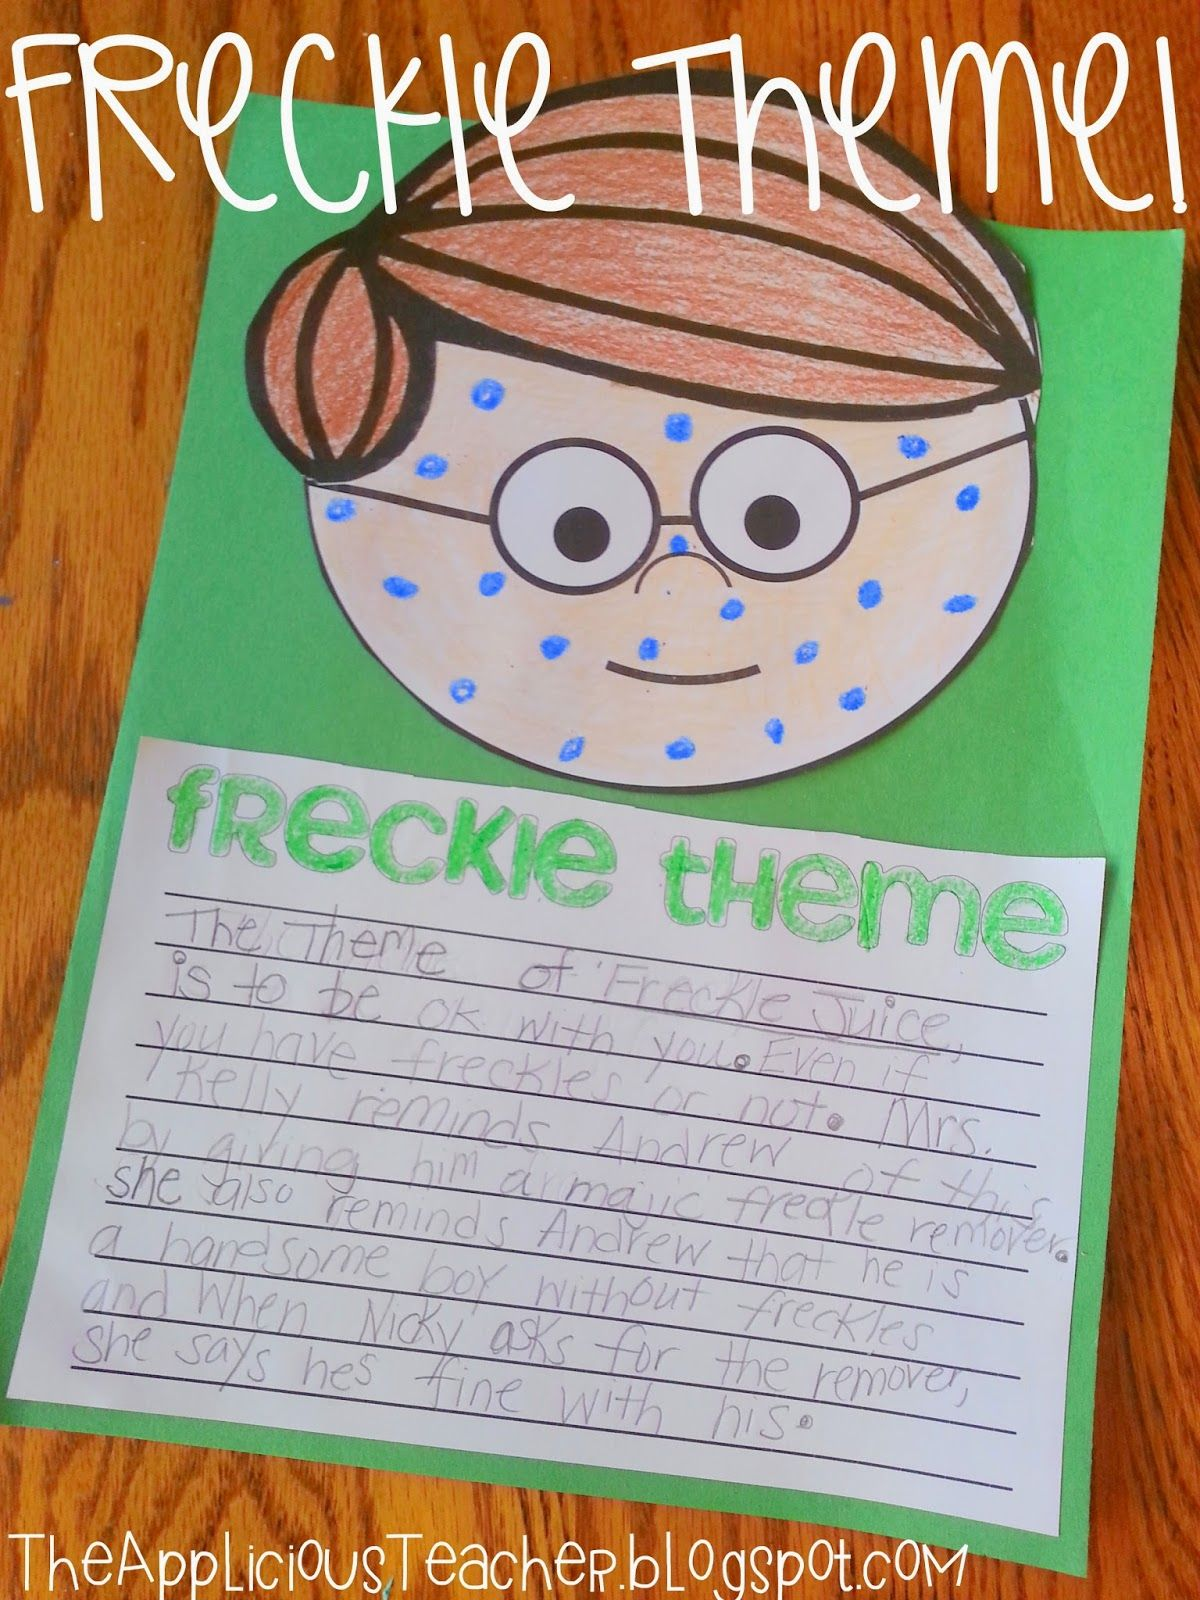 worksheet Freckle Juice Worksheets 1000 images about freckle juice on pinterest reading games and student